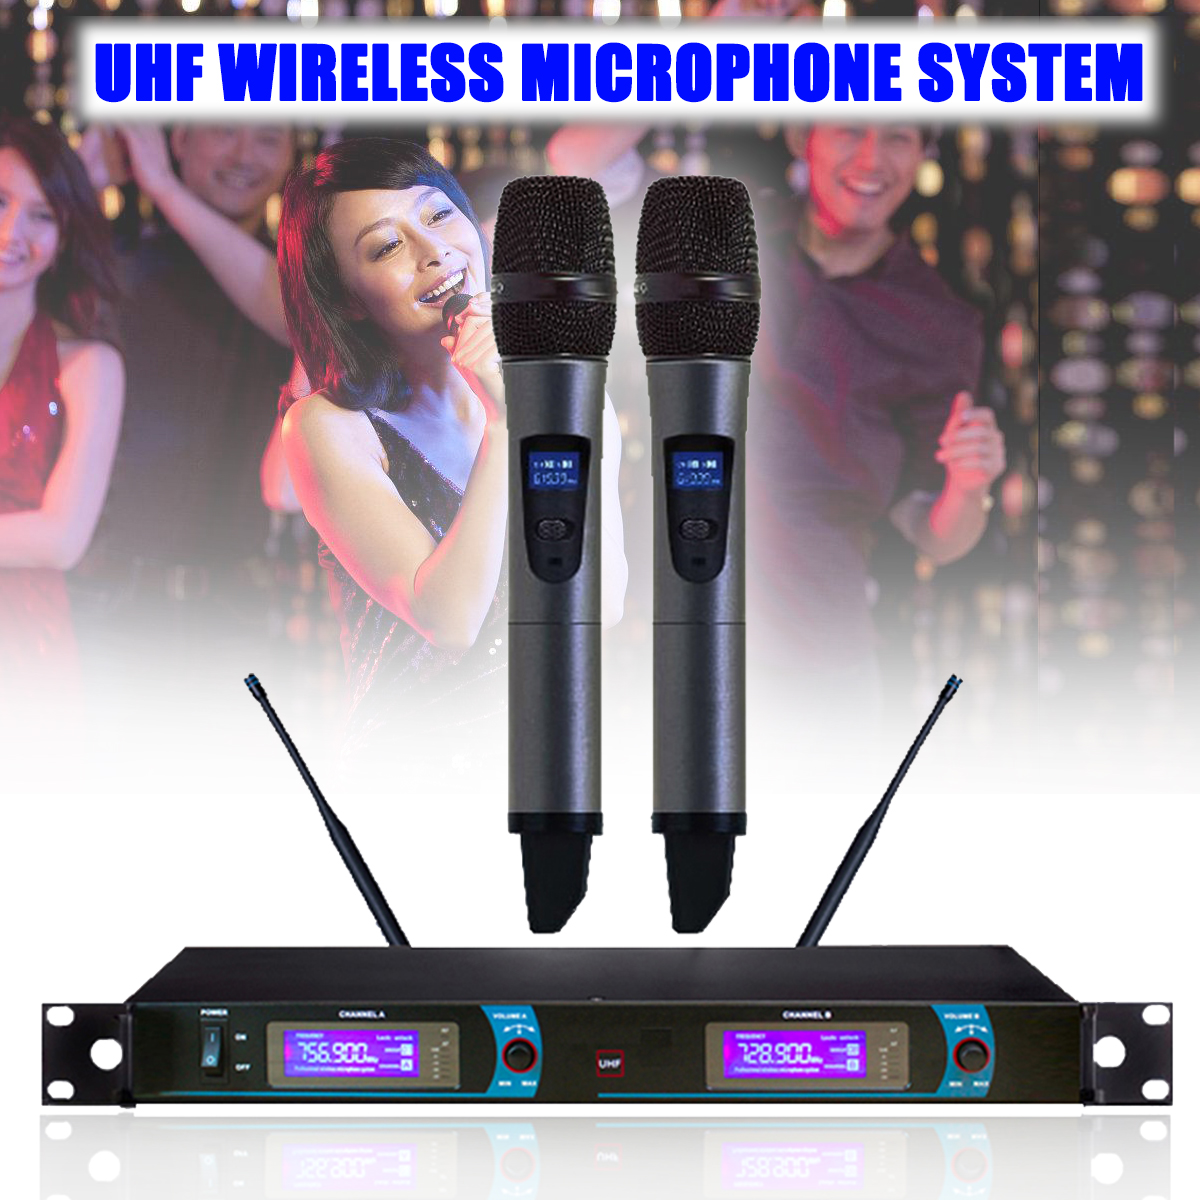 Karaoke DJ Wireless Microphone Profesional LCD Display UHF Wireless Dual Handheld Microphone Mic System Home KTV leory uhf wireless microphone system 4 channel uhf receiver karaoke microphone system with four mic for diy family ktv singing